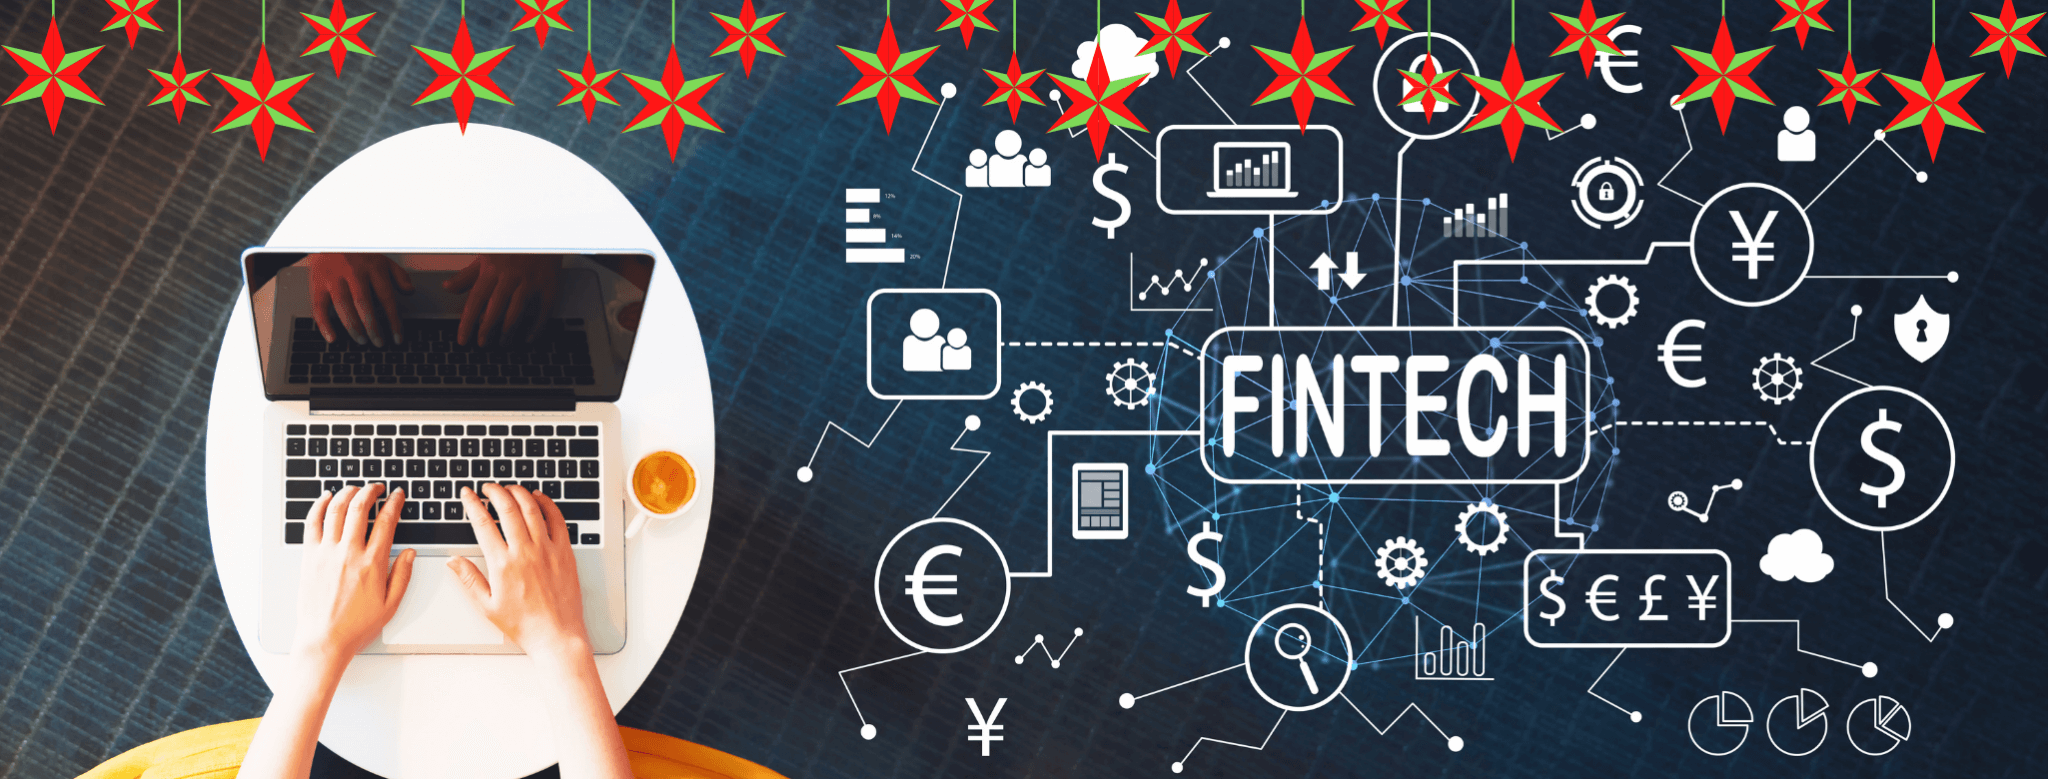 FinTech Startups-As a Future Service for Banks